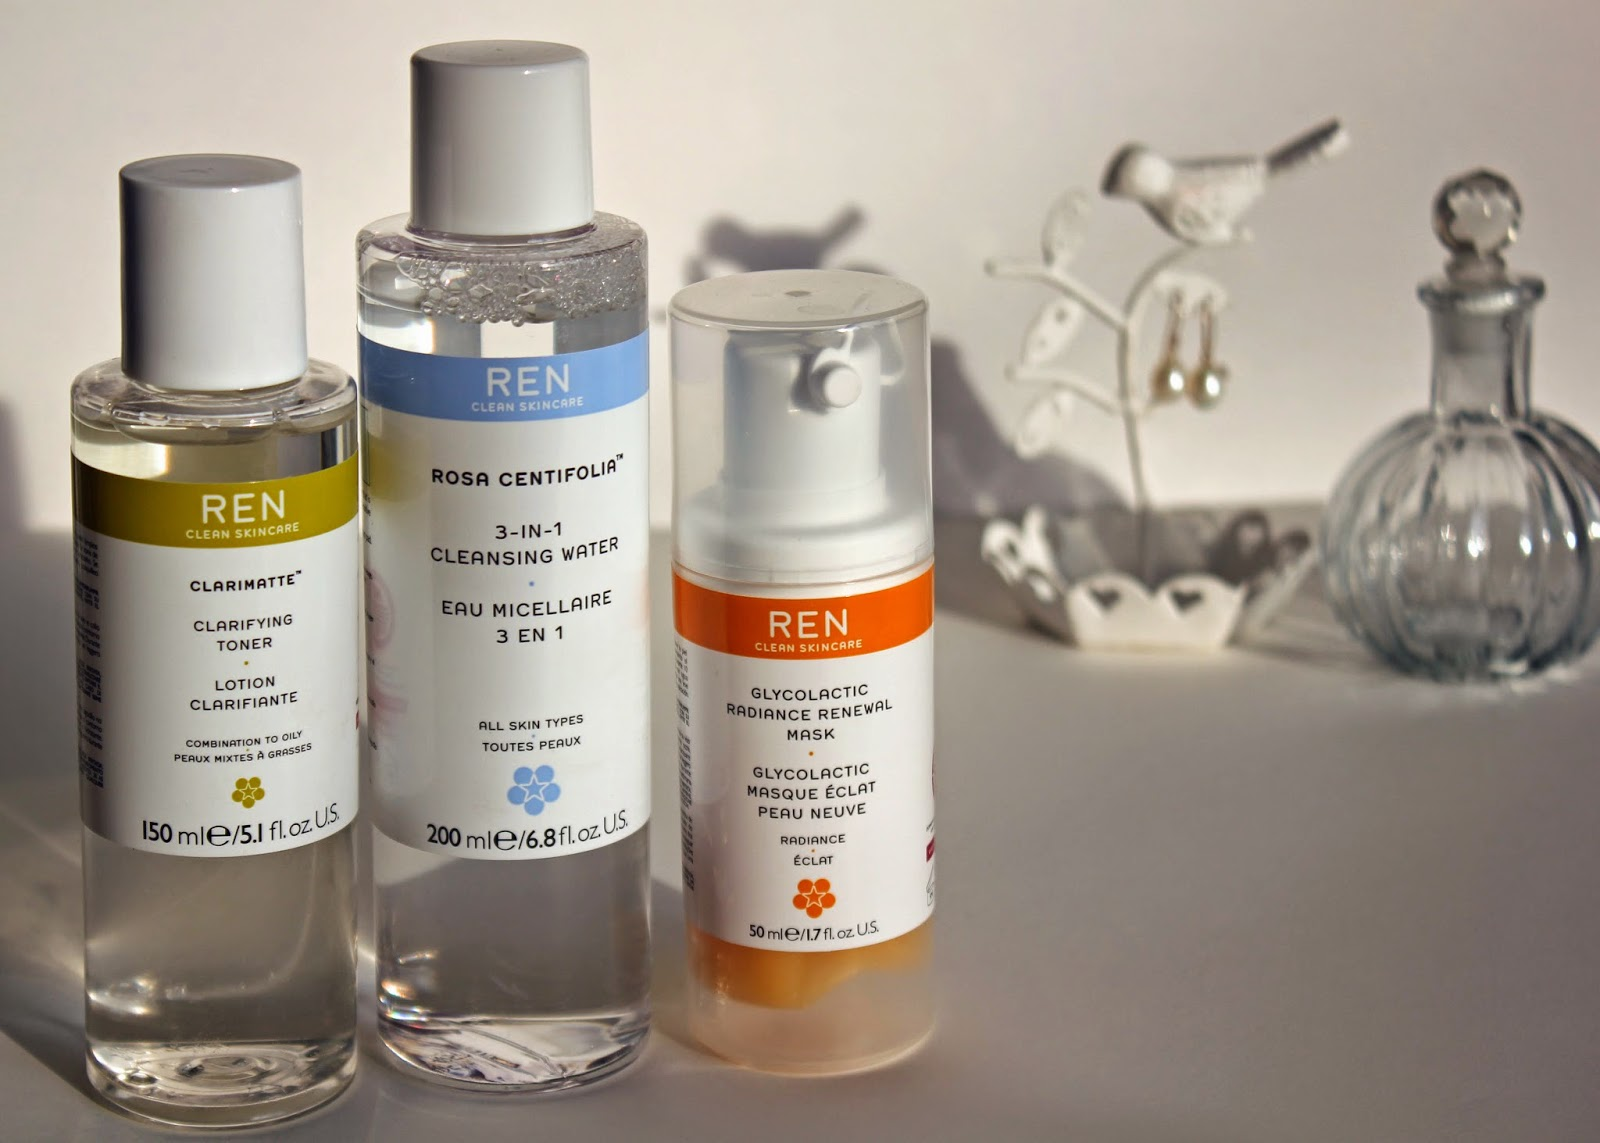 REN Skincare review - clarifying toner, micellar water and glycolactic renewal mask